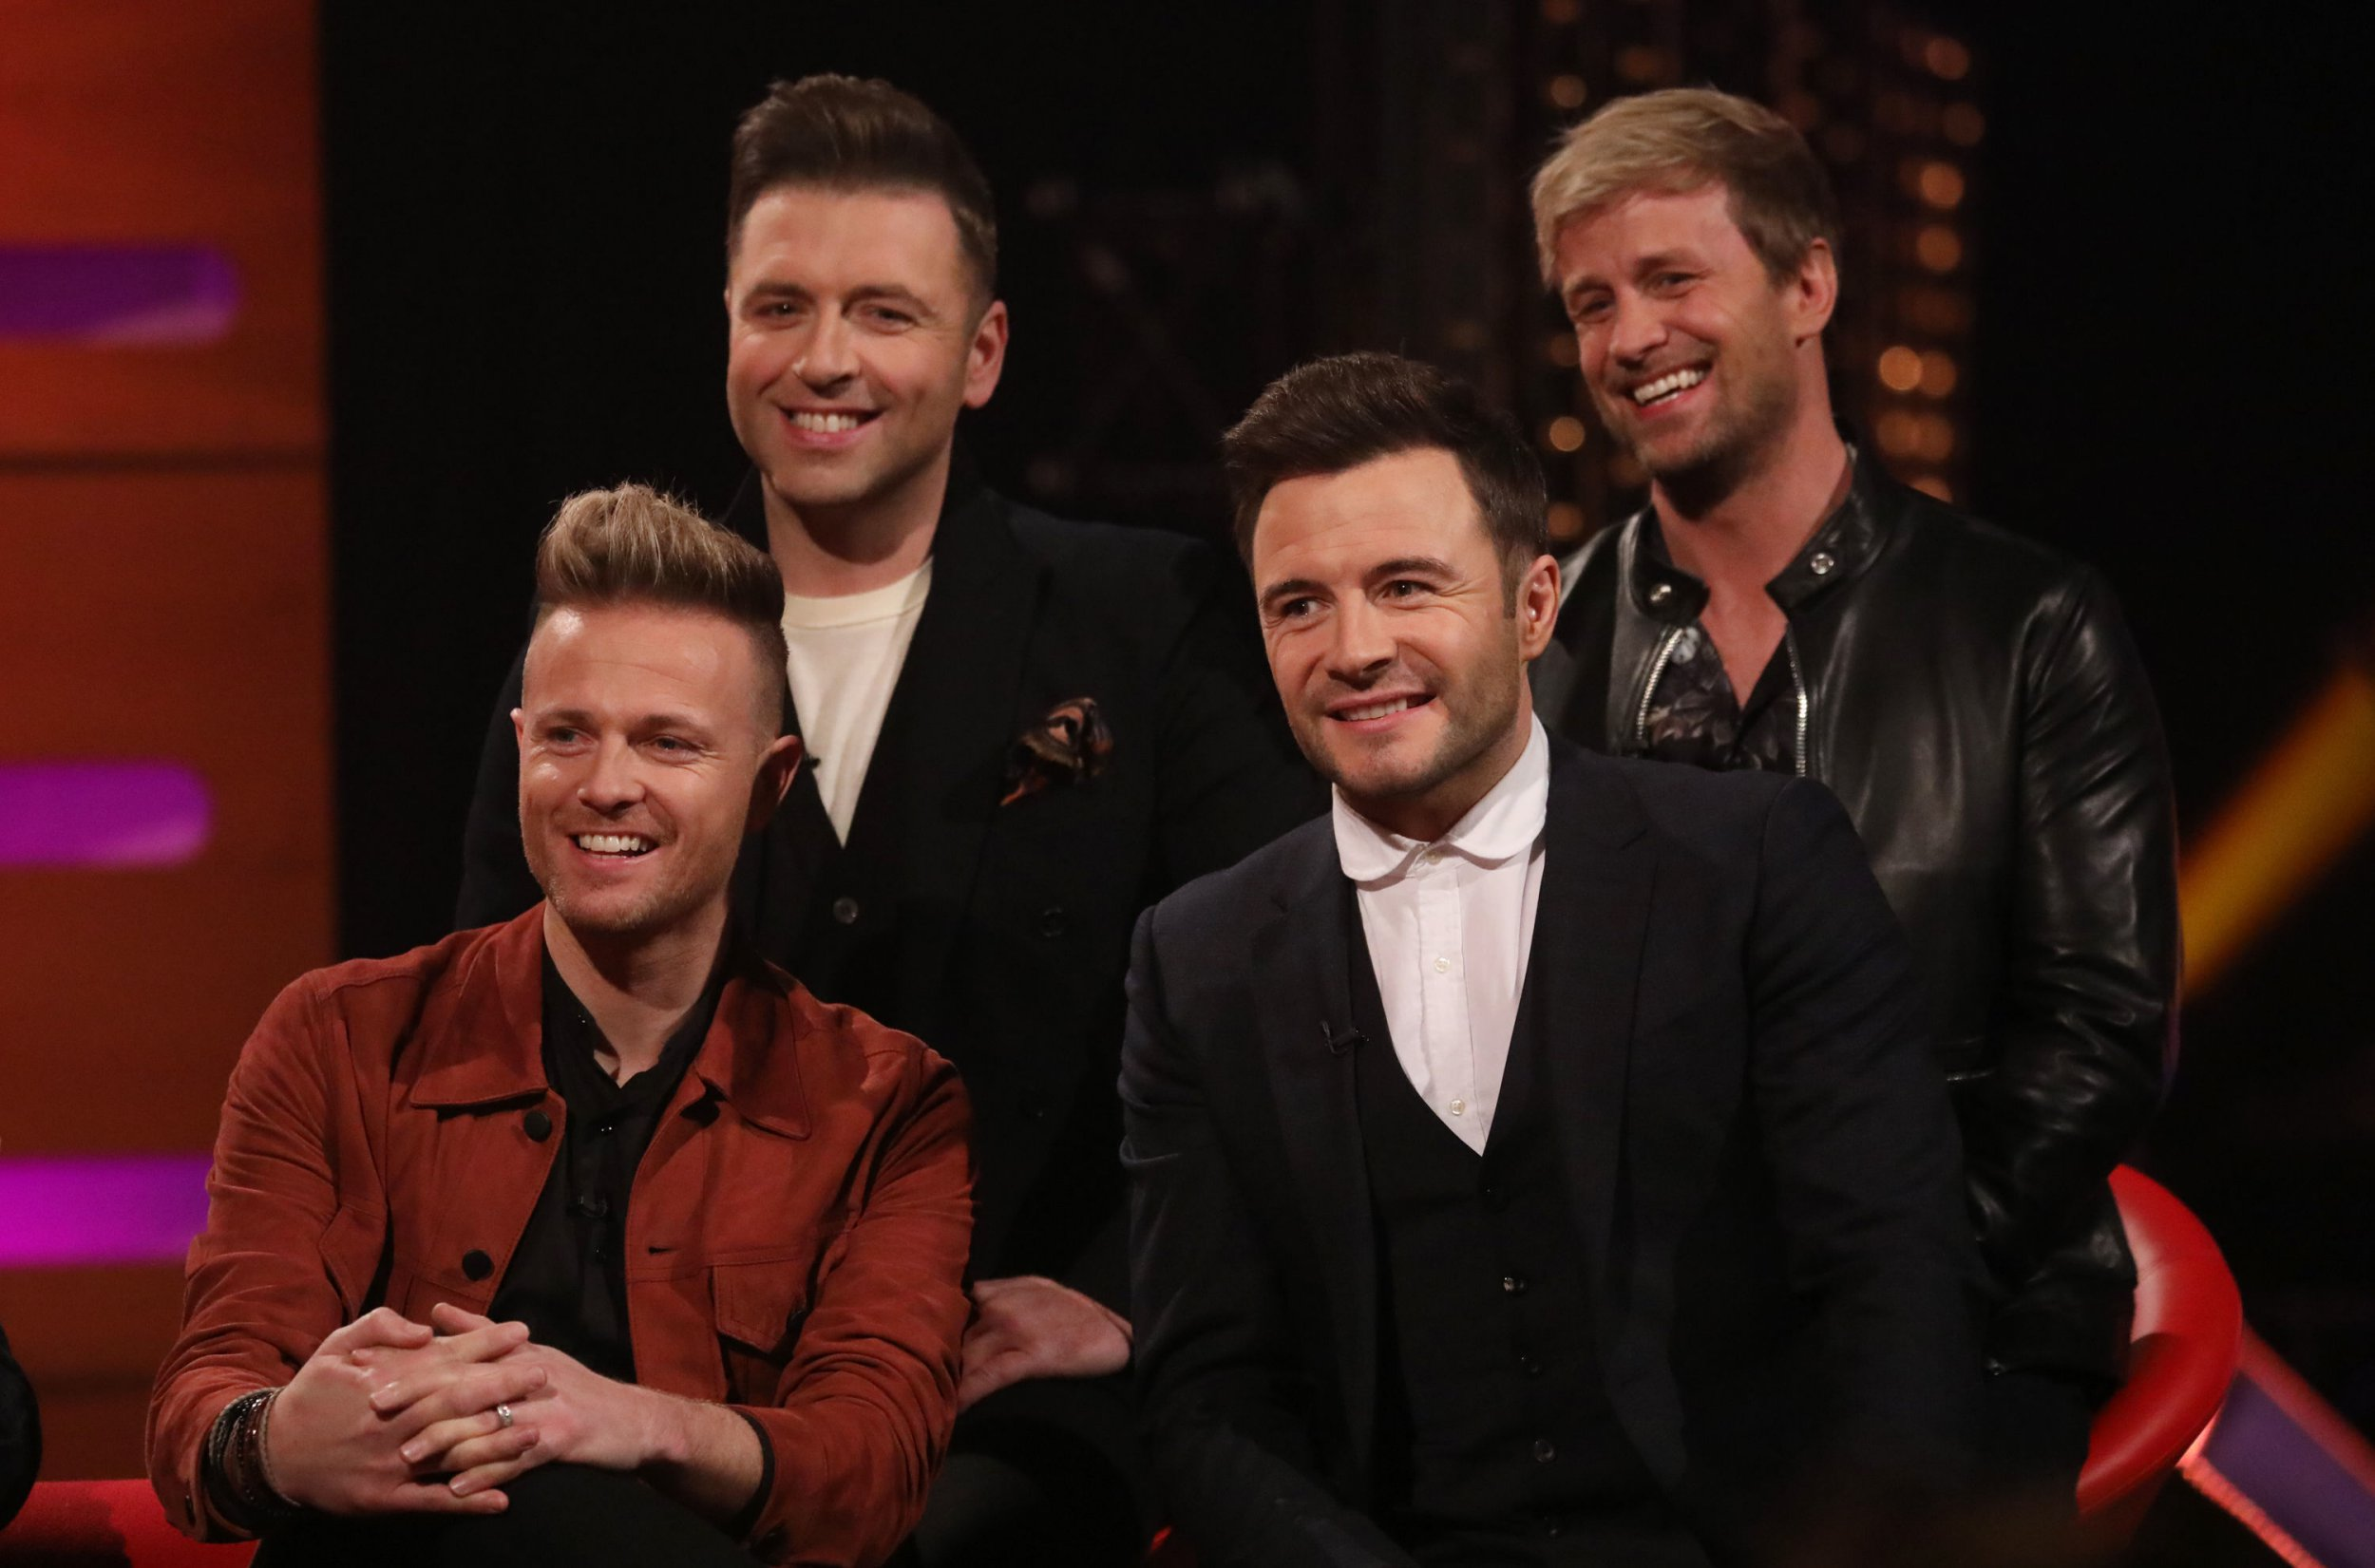 Is Brian McFadden still in Westlife, and why did the band originally split up?